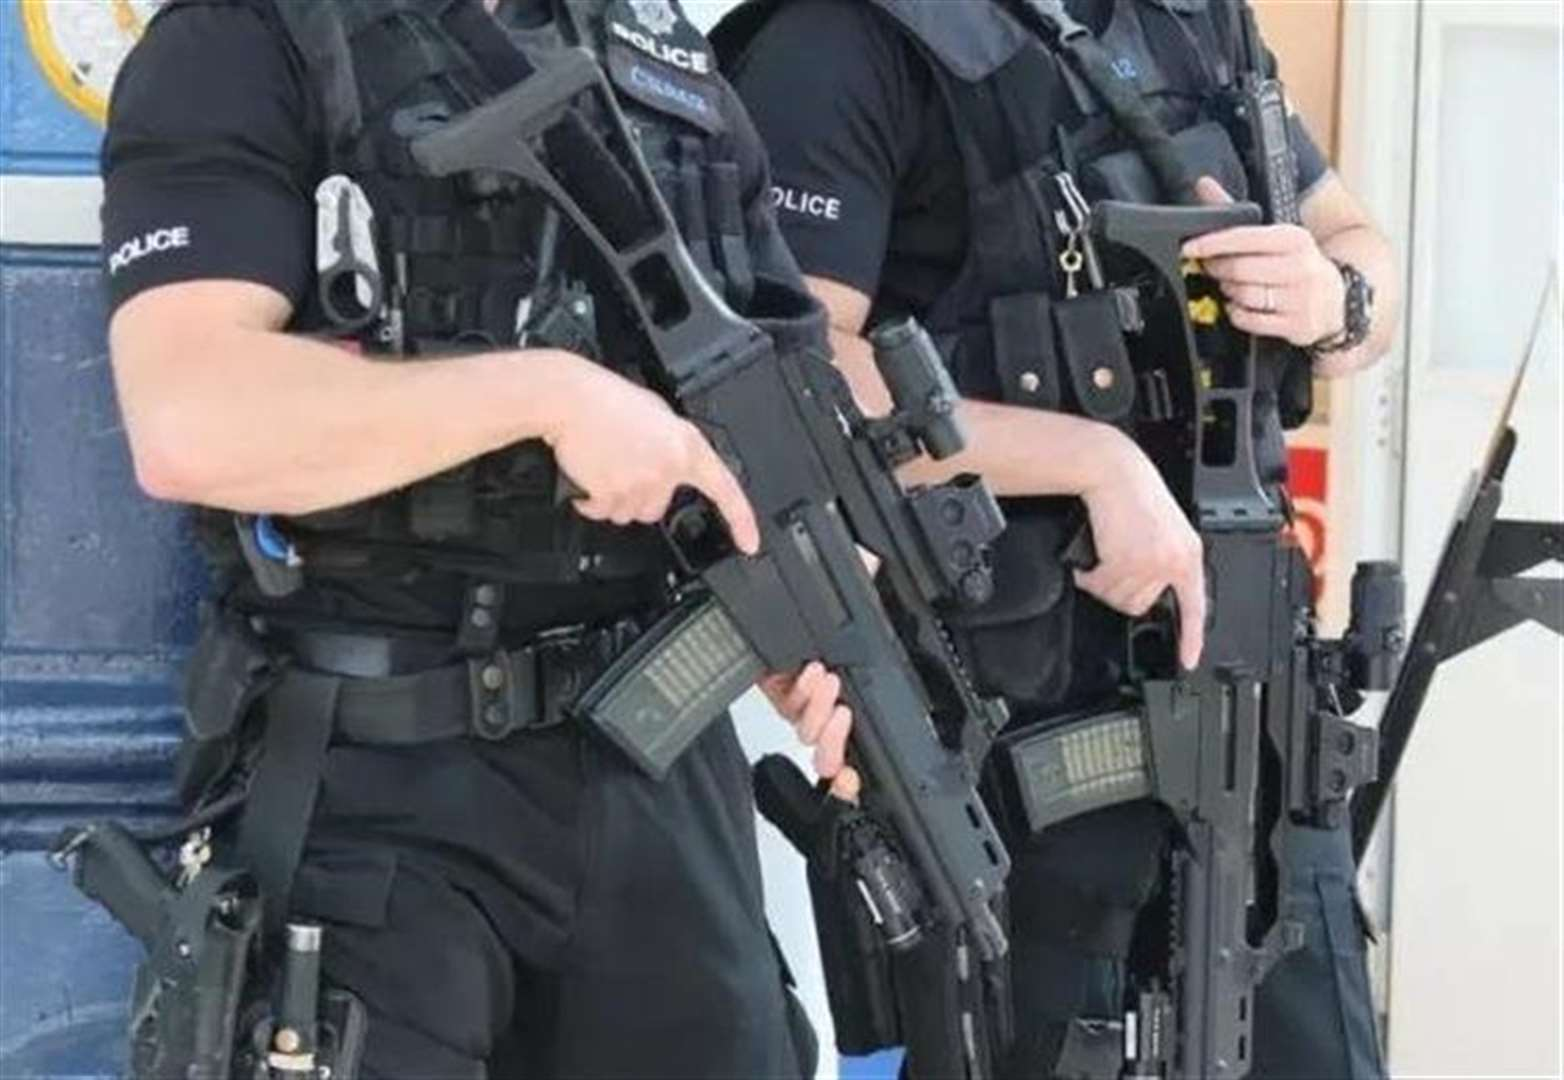 Armed police called to leisure park